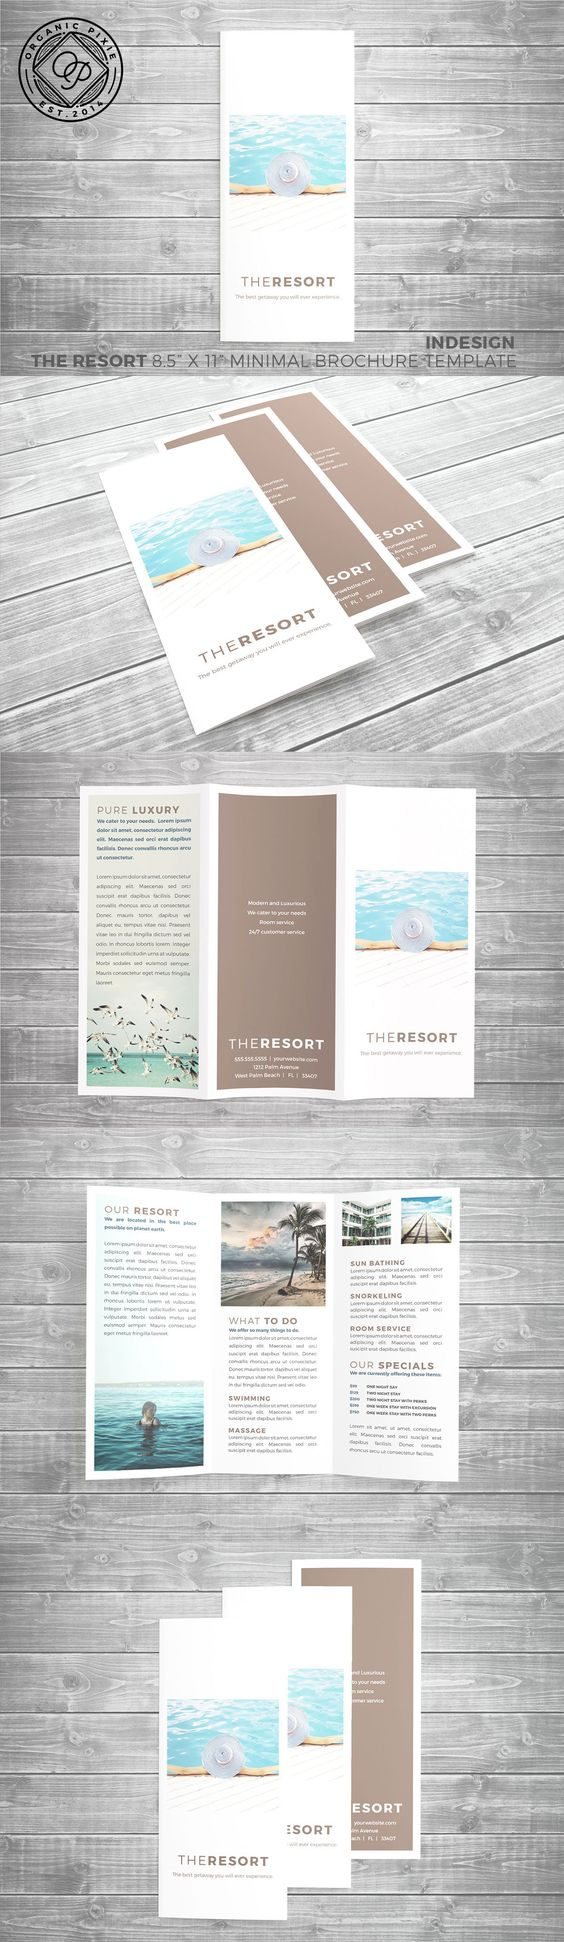 The resort minimal tri fold 8 5 x 11 pinterest design for 8 5 x 11 brochure template indesign